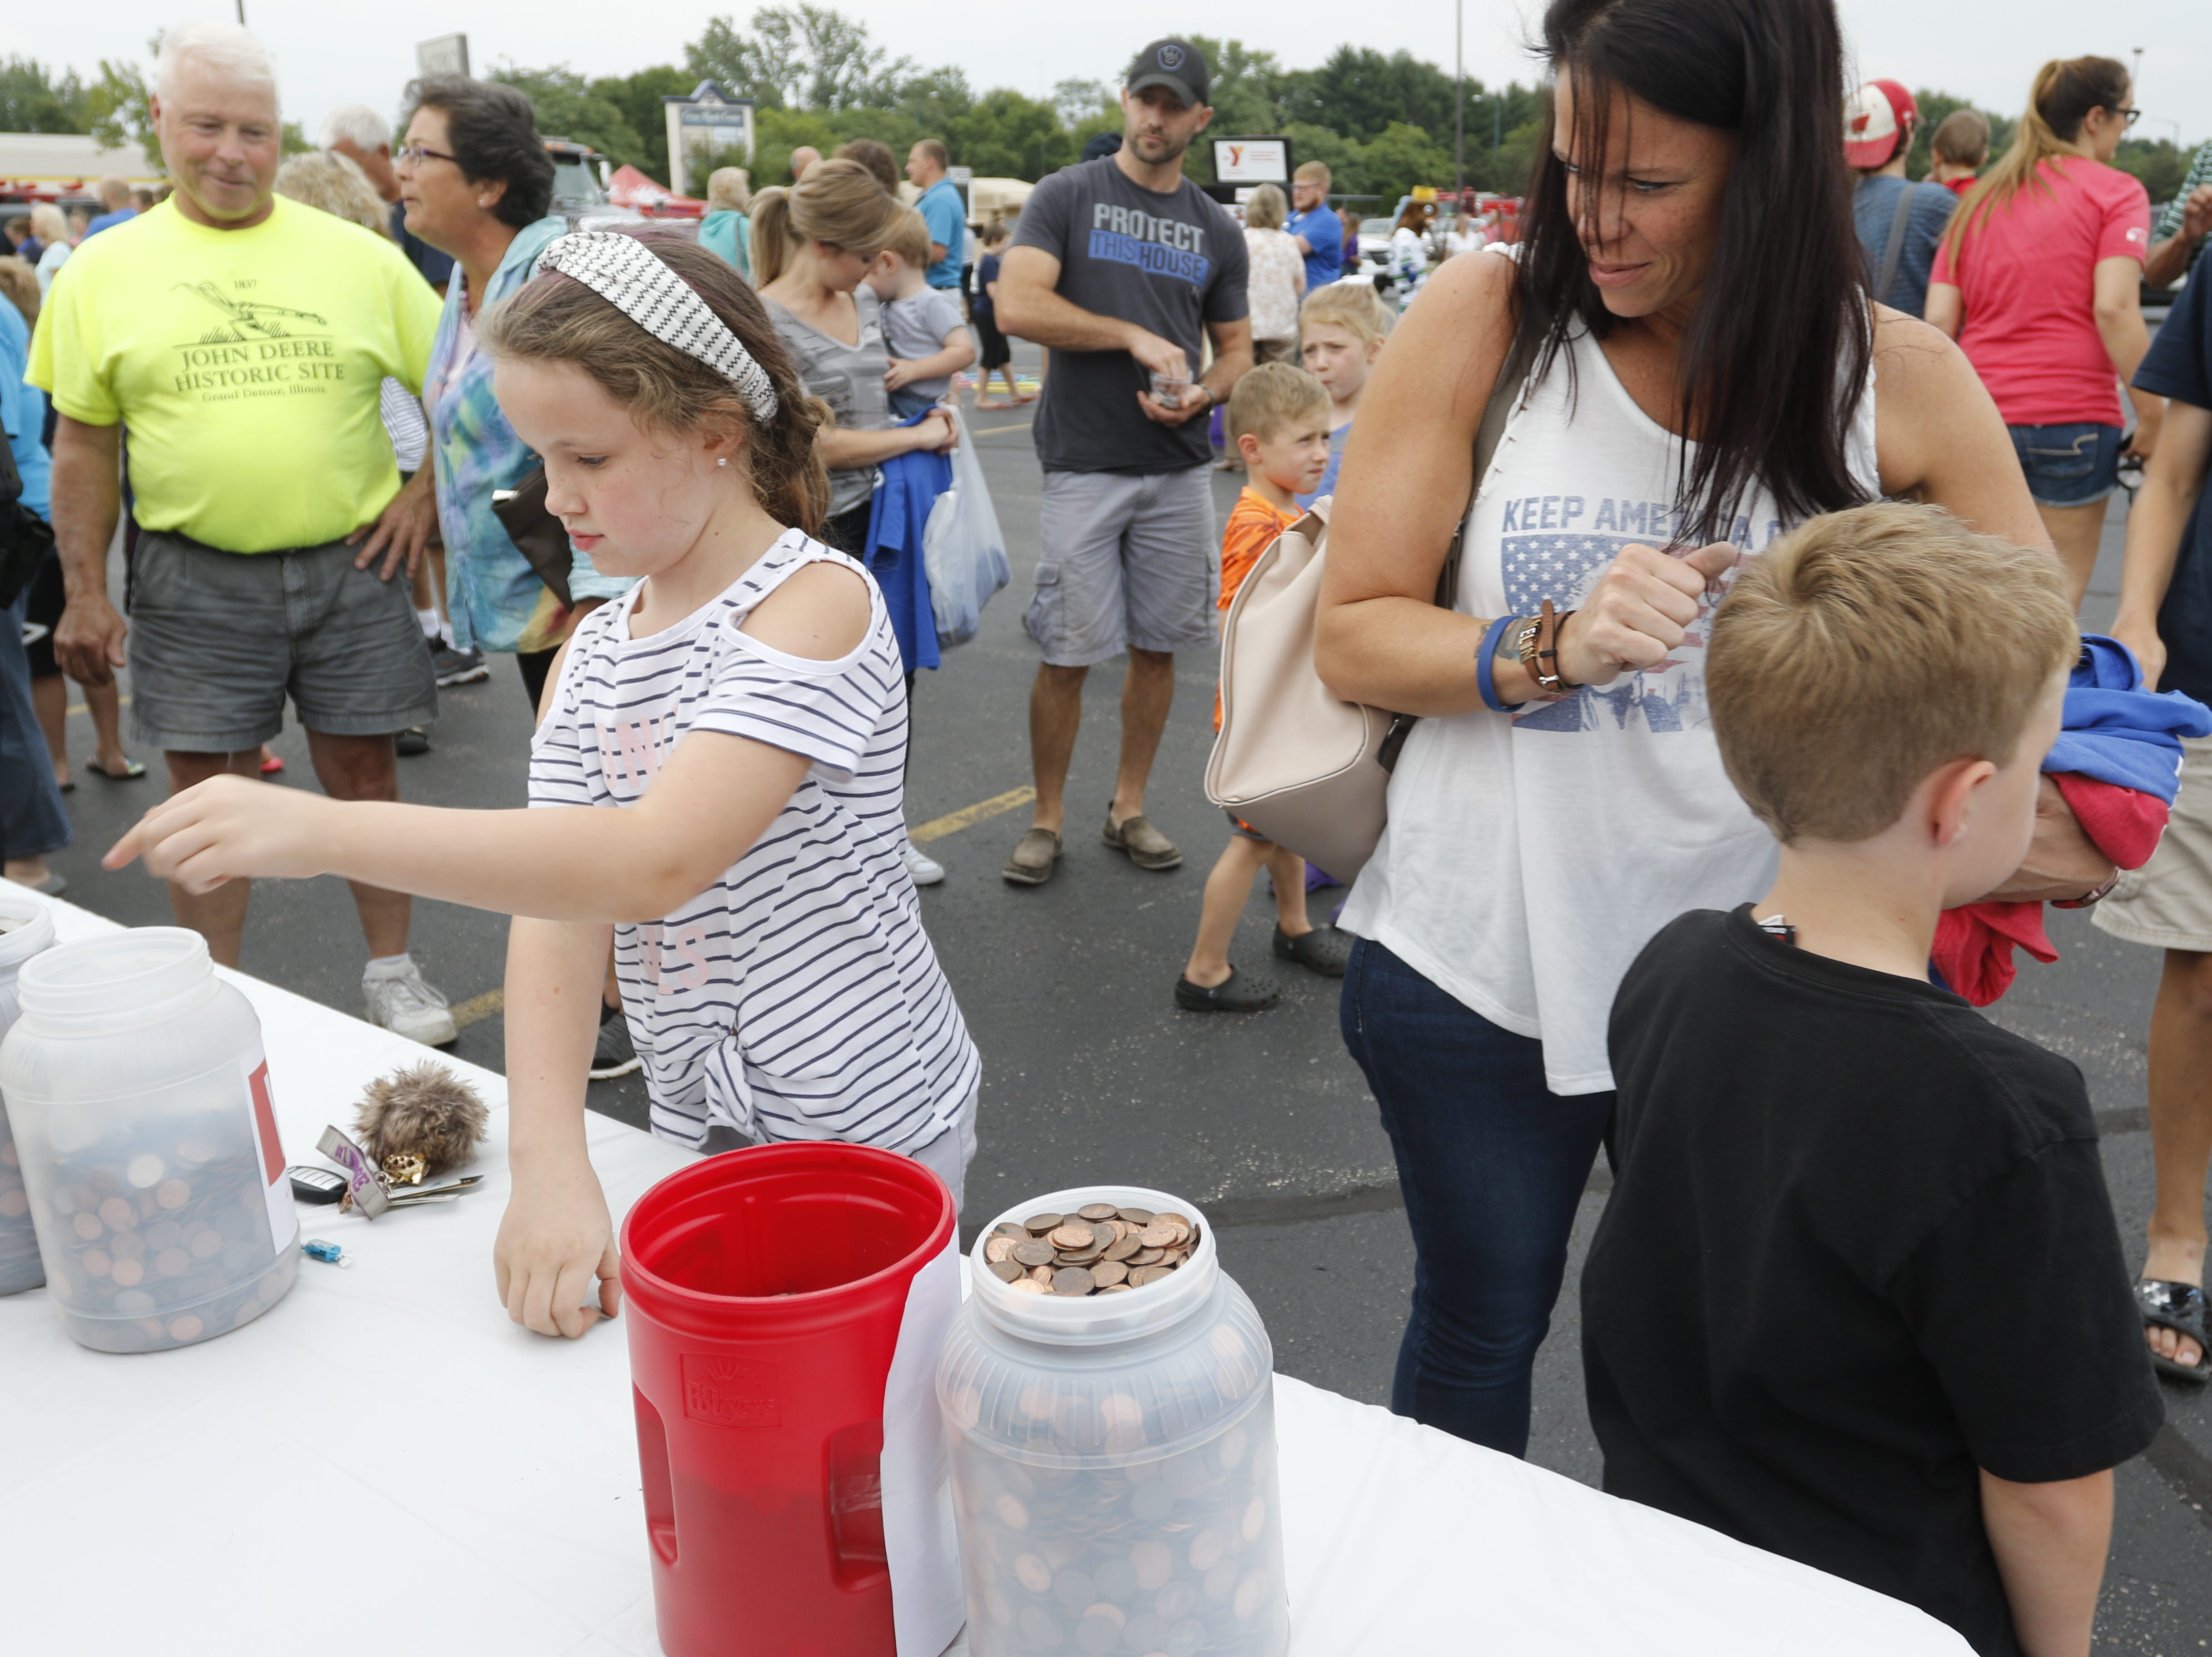 Brylee O'Neil, 8, donates change to the penny war while her mother, Lindsey O'Neil, left, watches, during the National Night Out event put on by the Wisconsin Rapids Police Department in the Crossview Church parking lot in Wisconsin Rapids Tuesday, August 7, 2018.